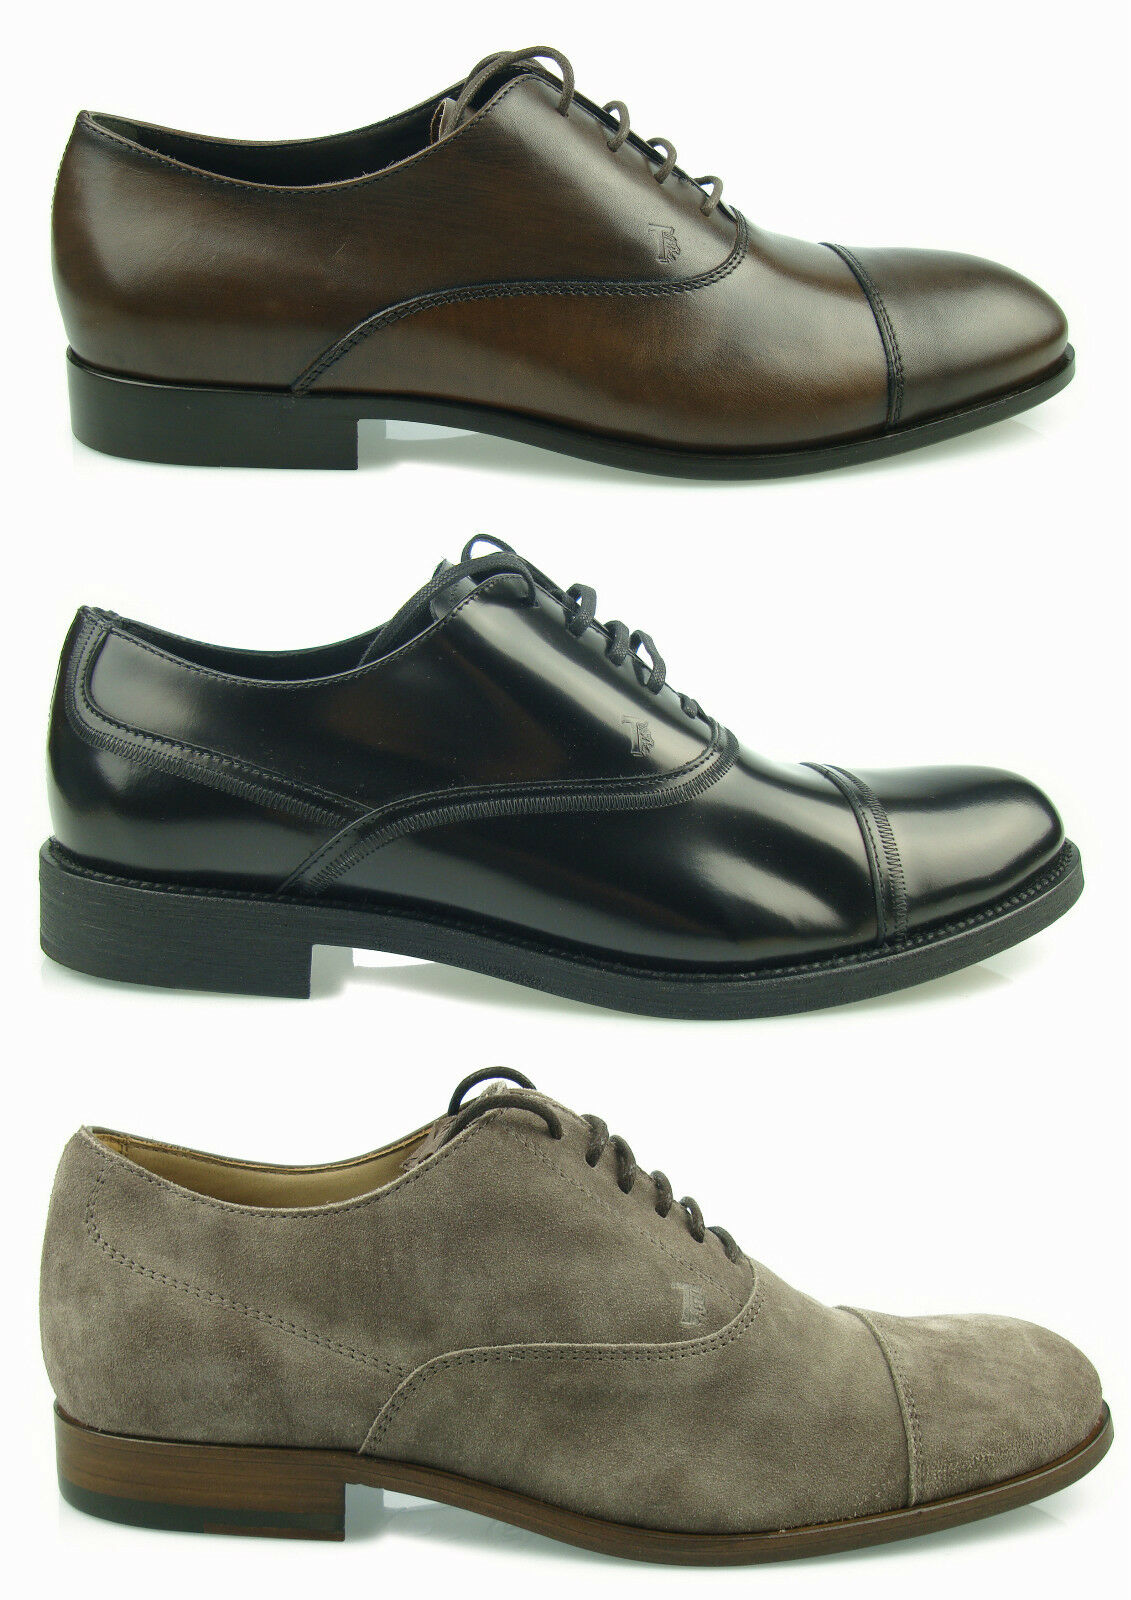 TOD'S shoes men FRANCESINE MEN SHOES HERRENSHUHE LEATHER NUOVE 100% AUTENTICHE